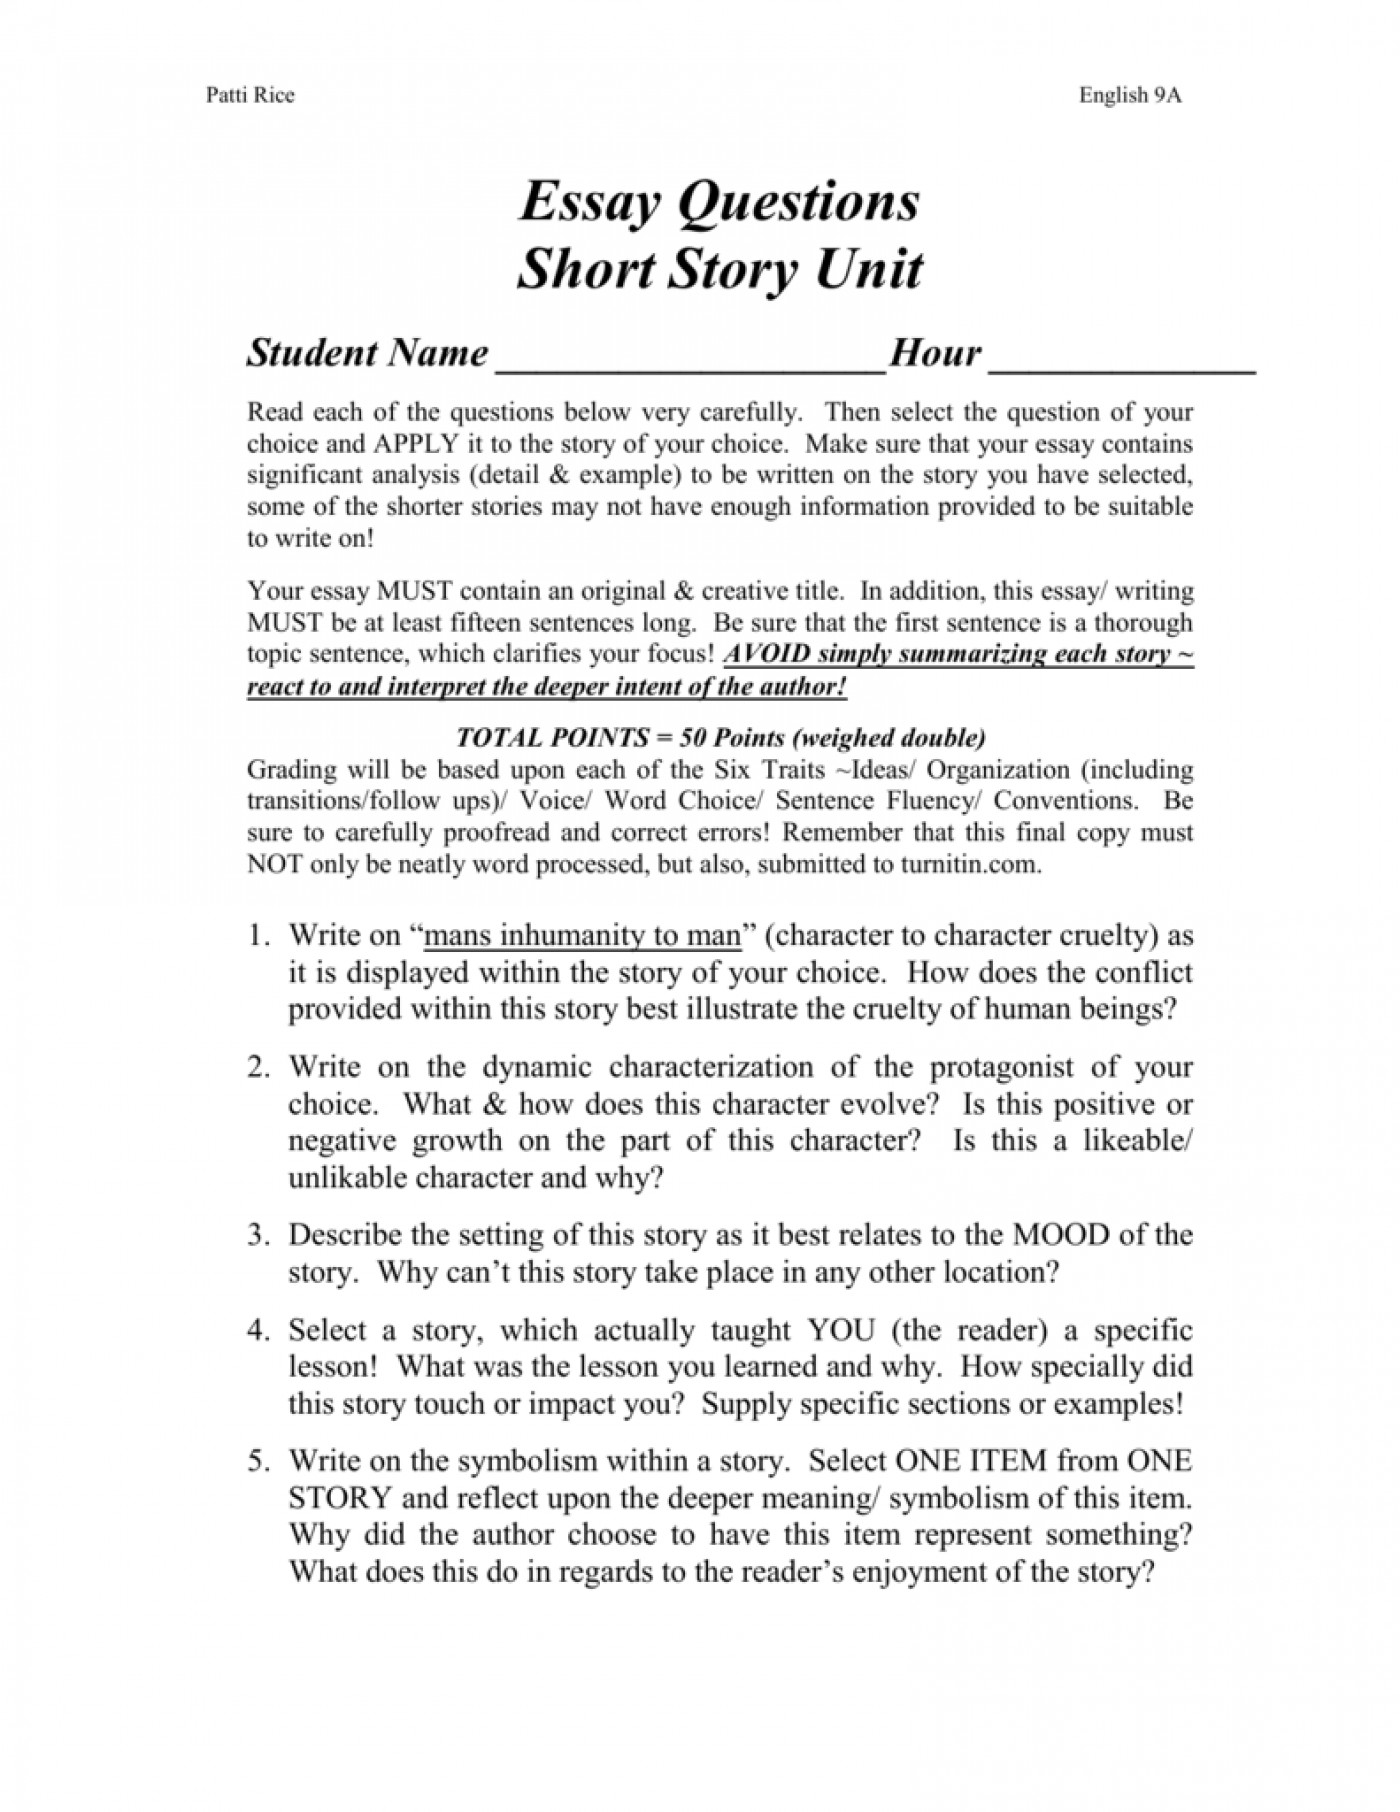 001 Essay Example Short Story 008001643 1 Incredible For College Analysis Assignment Writing Contest Philippines 1400